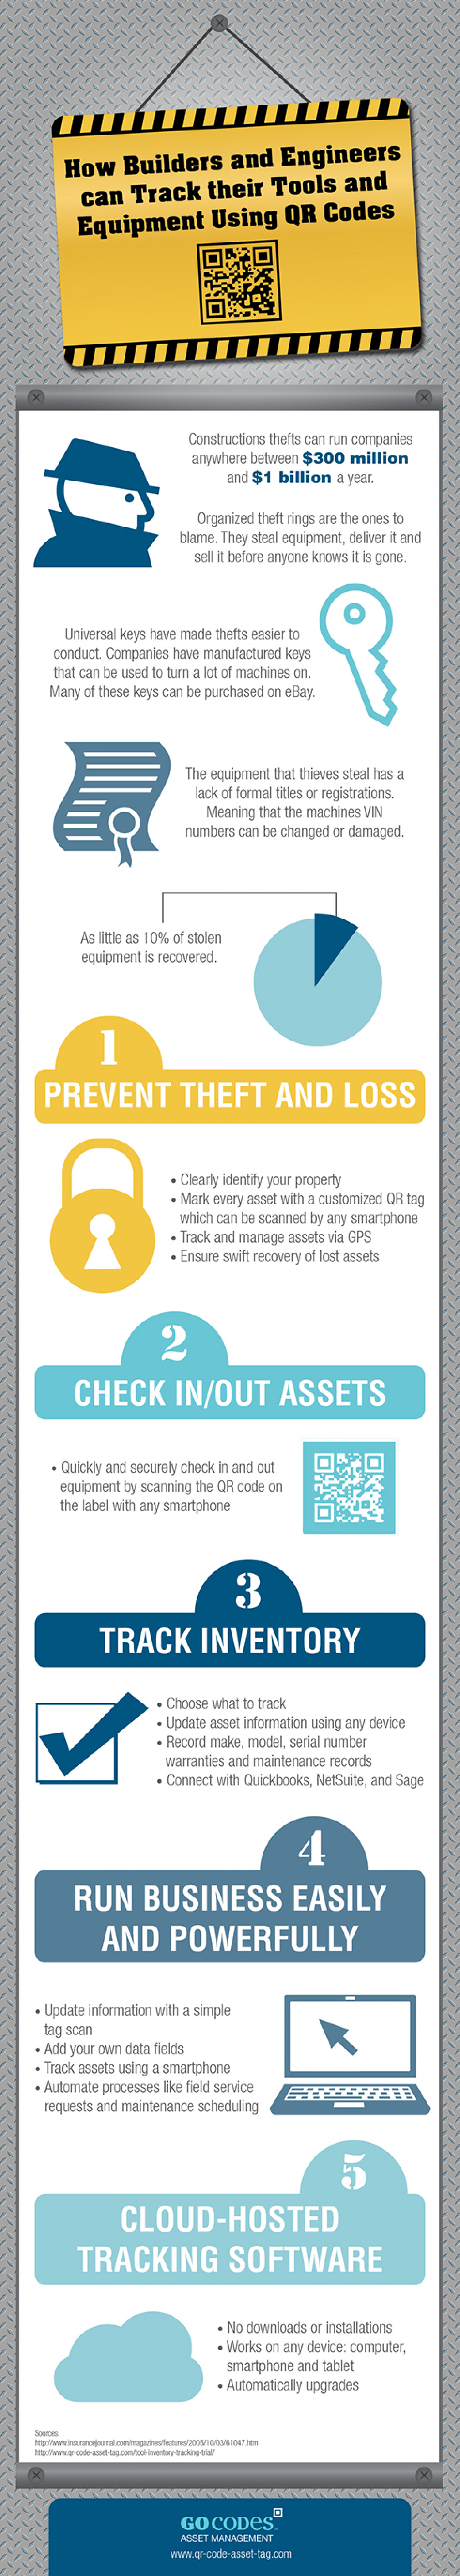 How To Track Tools and Equipment Using QR Codes Infographic